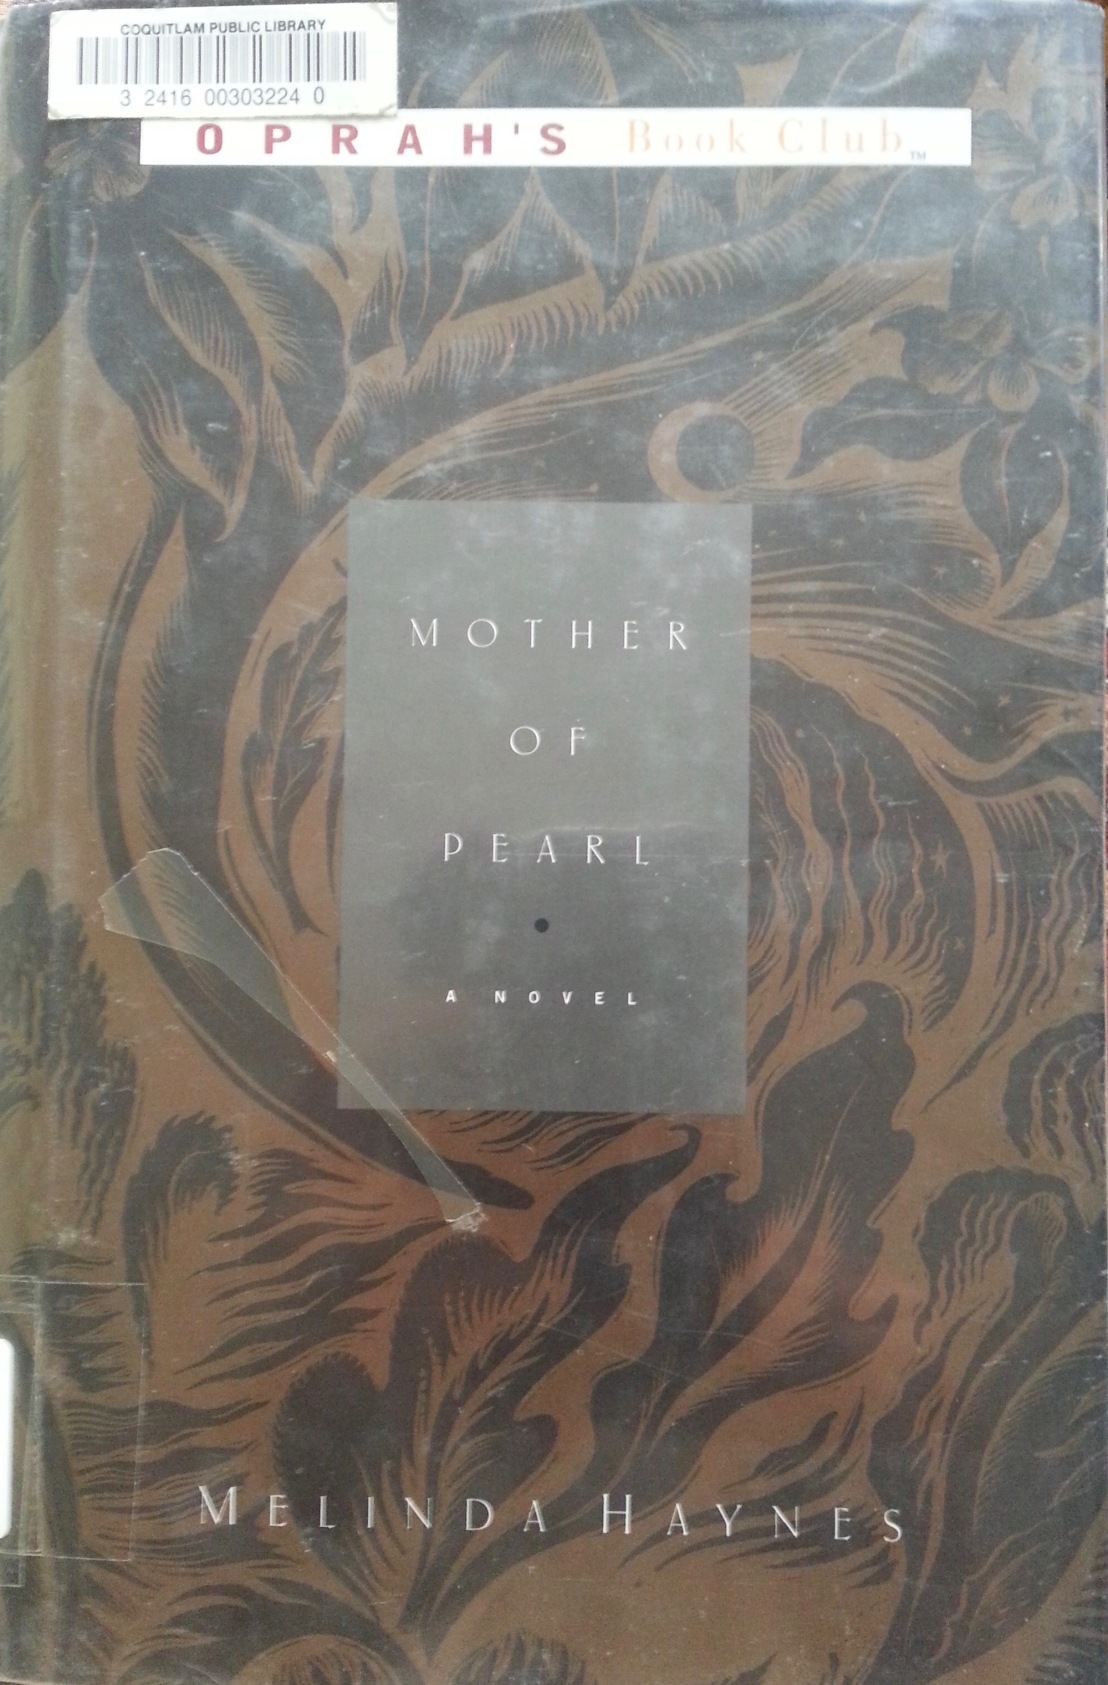 Melinda Haynes' — Mother of Pearl *****